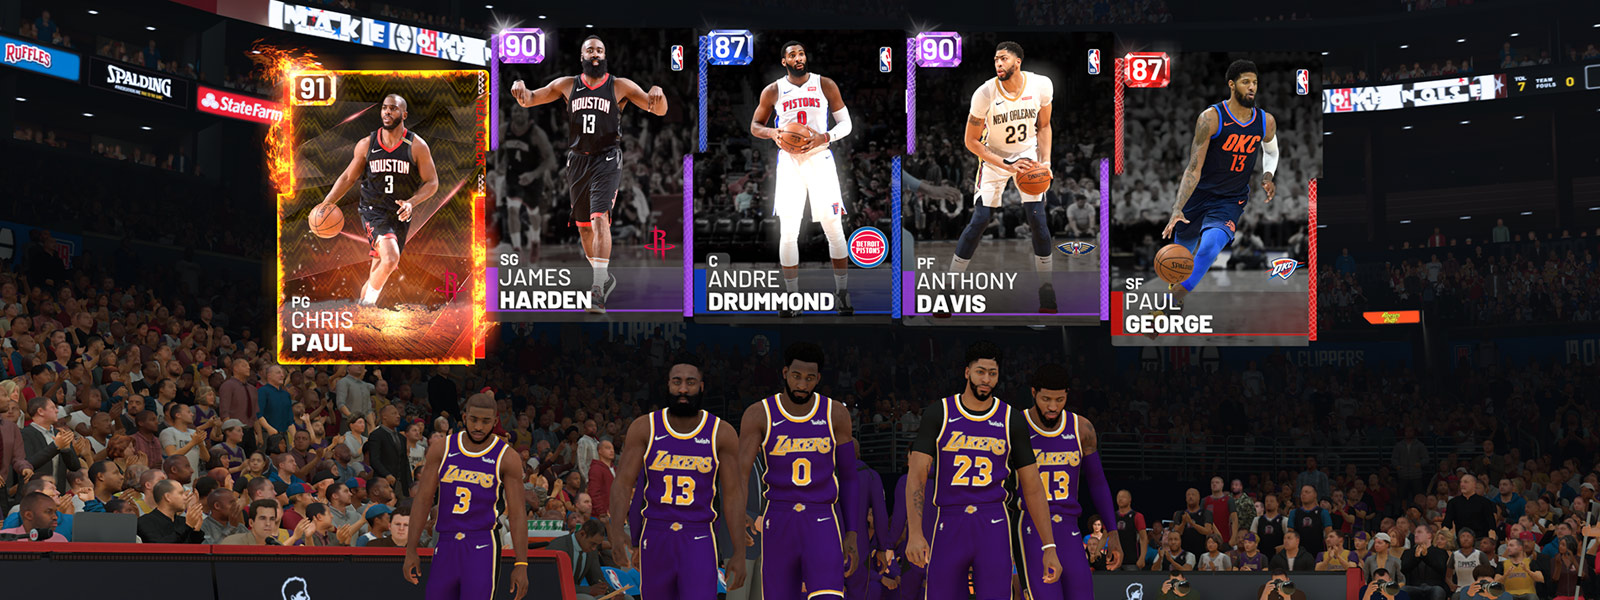 Vorderansicht des Lakers-Teams, bestehend aus Chris Paul, James Harden, Andrew Drummond, Anthony Davis und Paul George